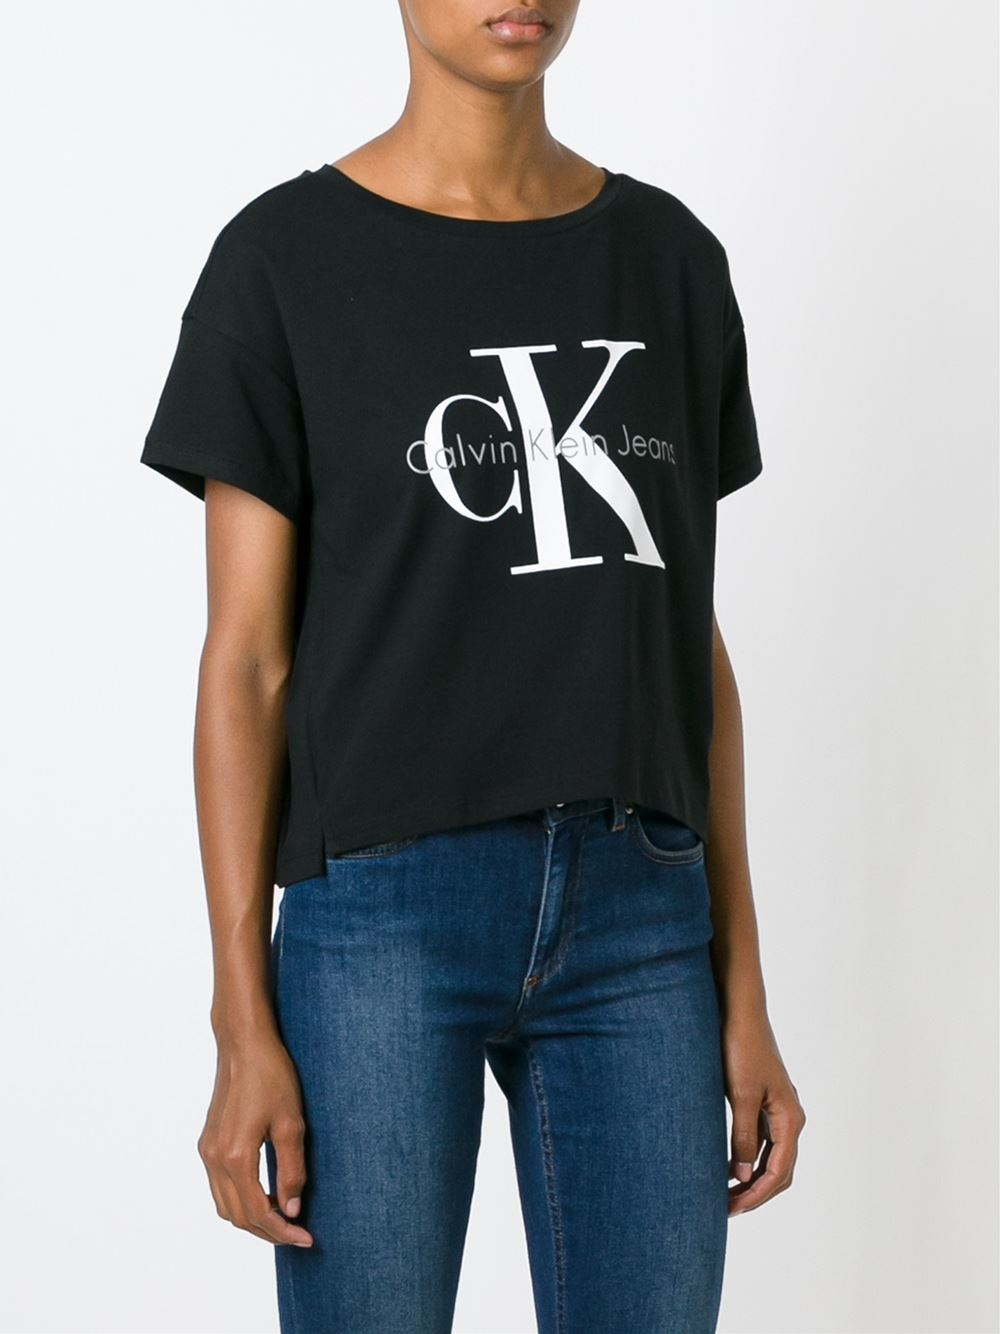 calvin klein jeans classic logo print t shirt in black lyst. Black Bedroom Furniture Sets. Home Design Ideas